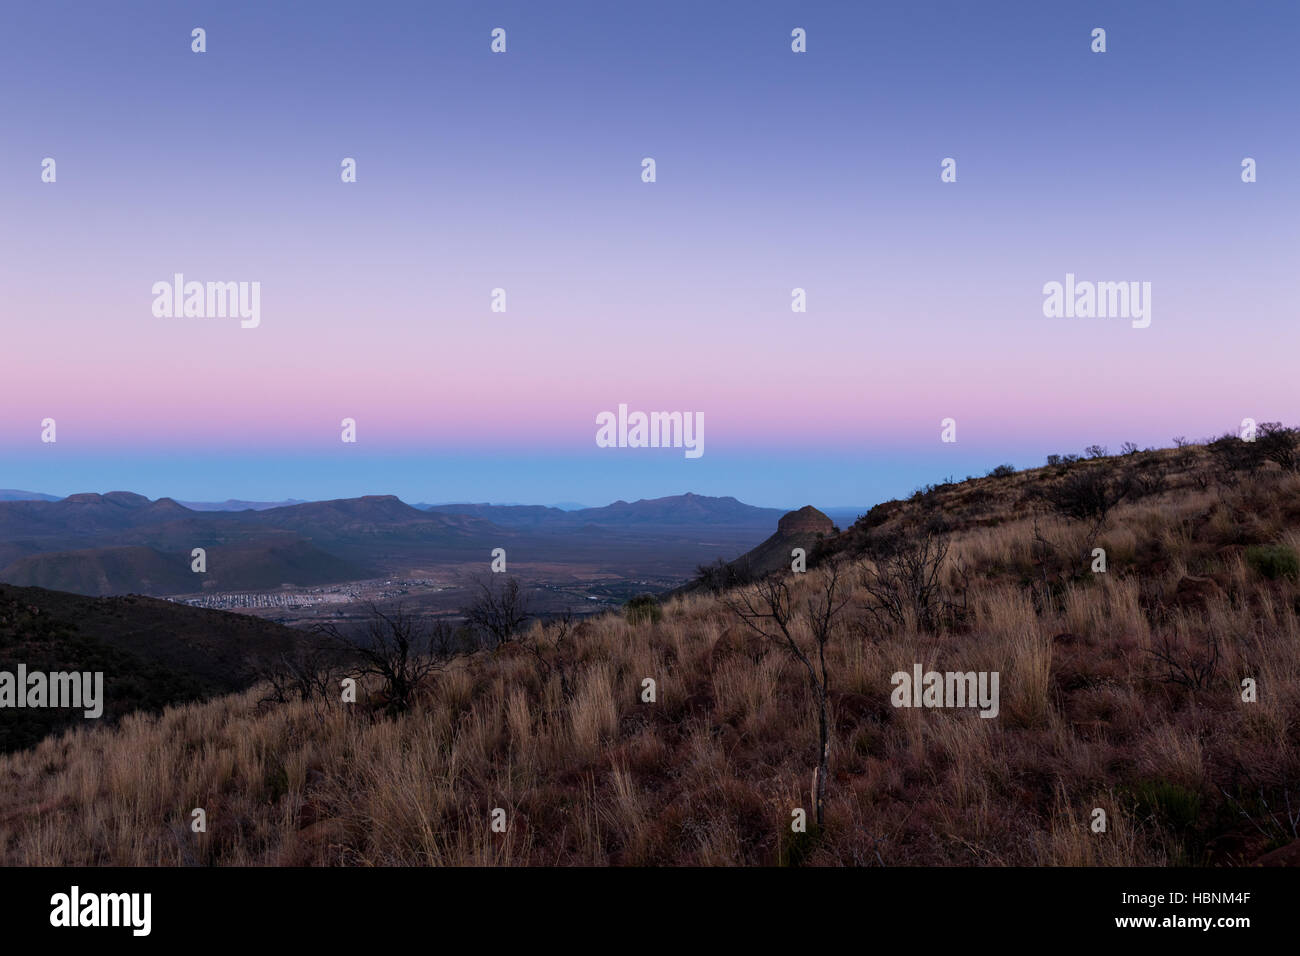 Valley Of Desolation - Stock Image